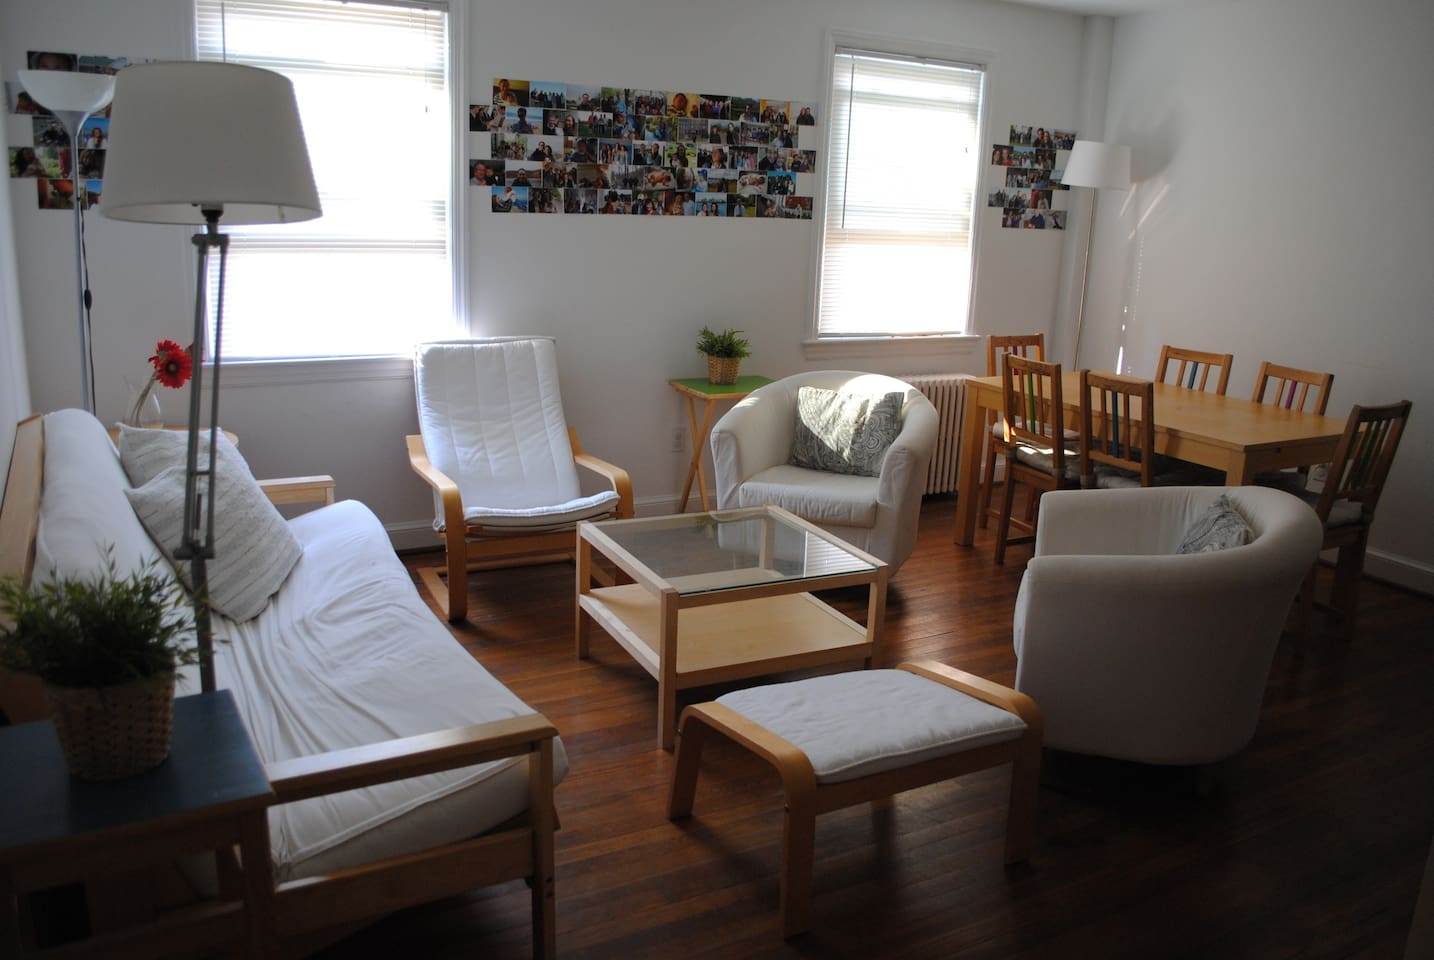 Living room and dining room. Futon-bed, extendable dining table.